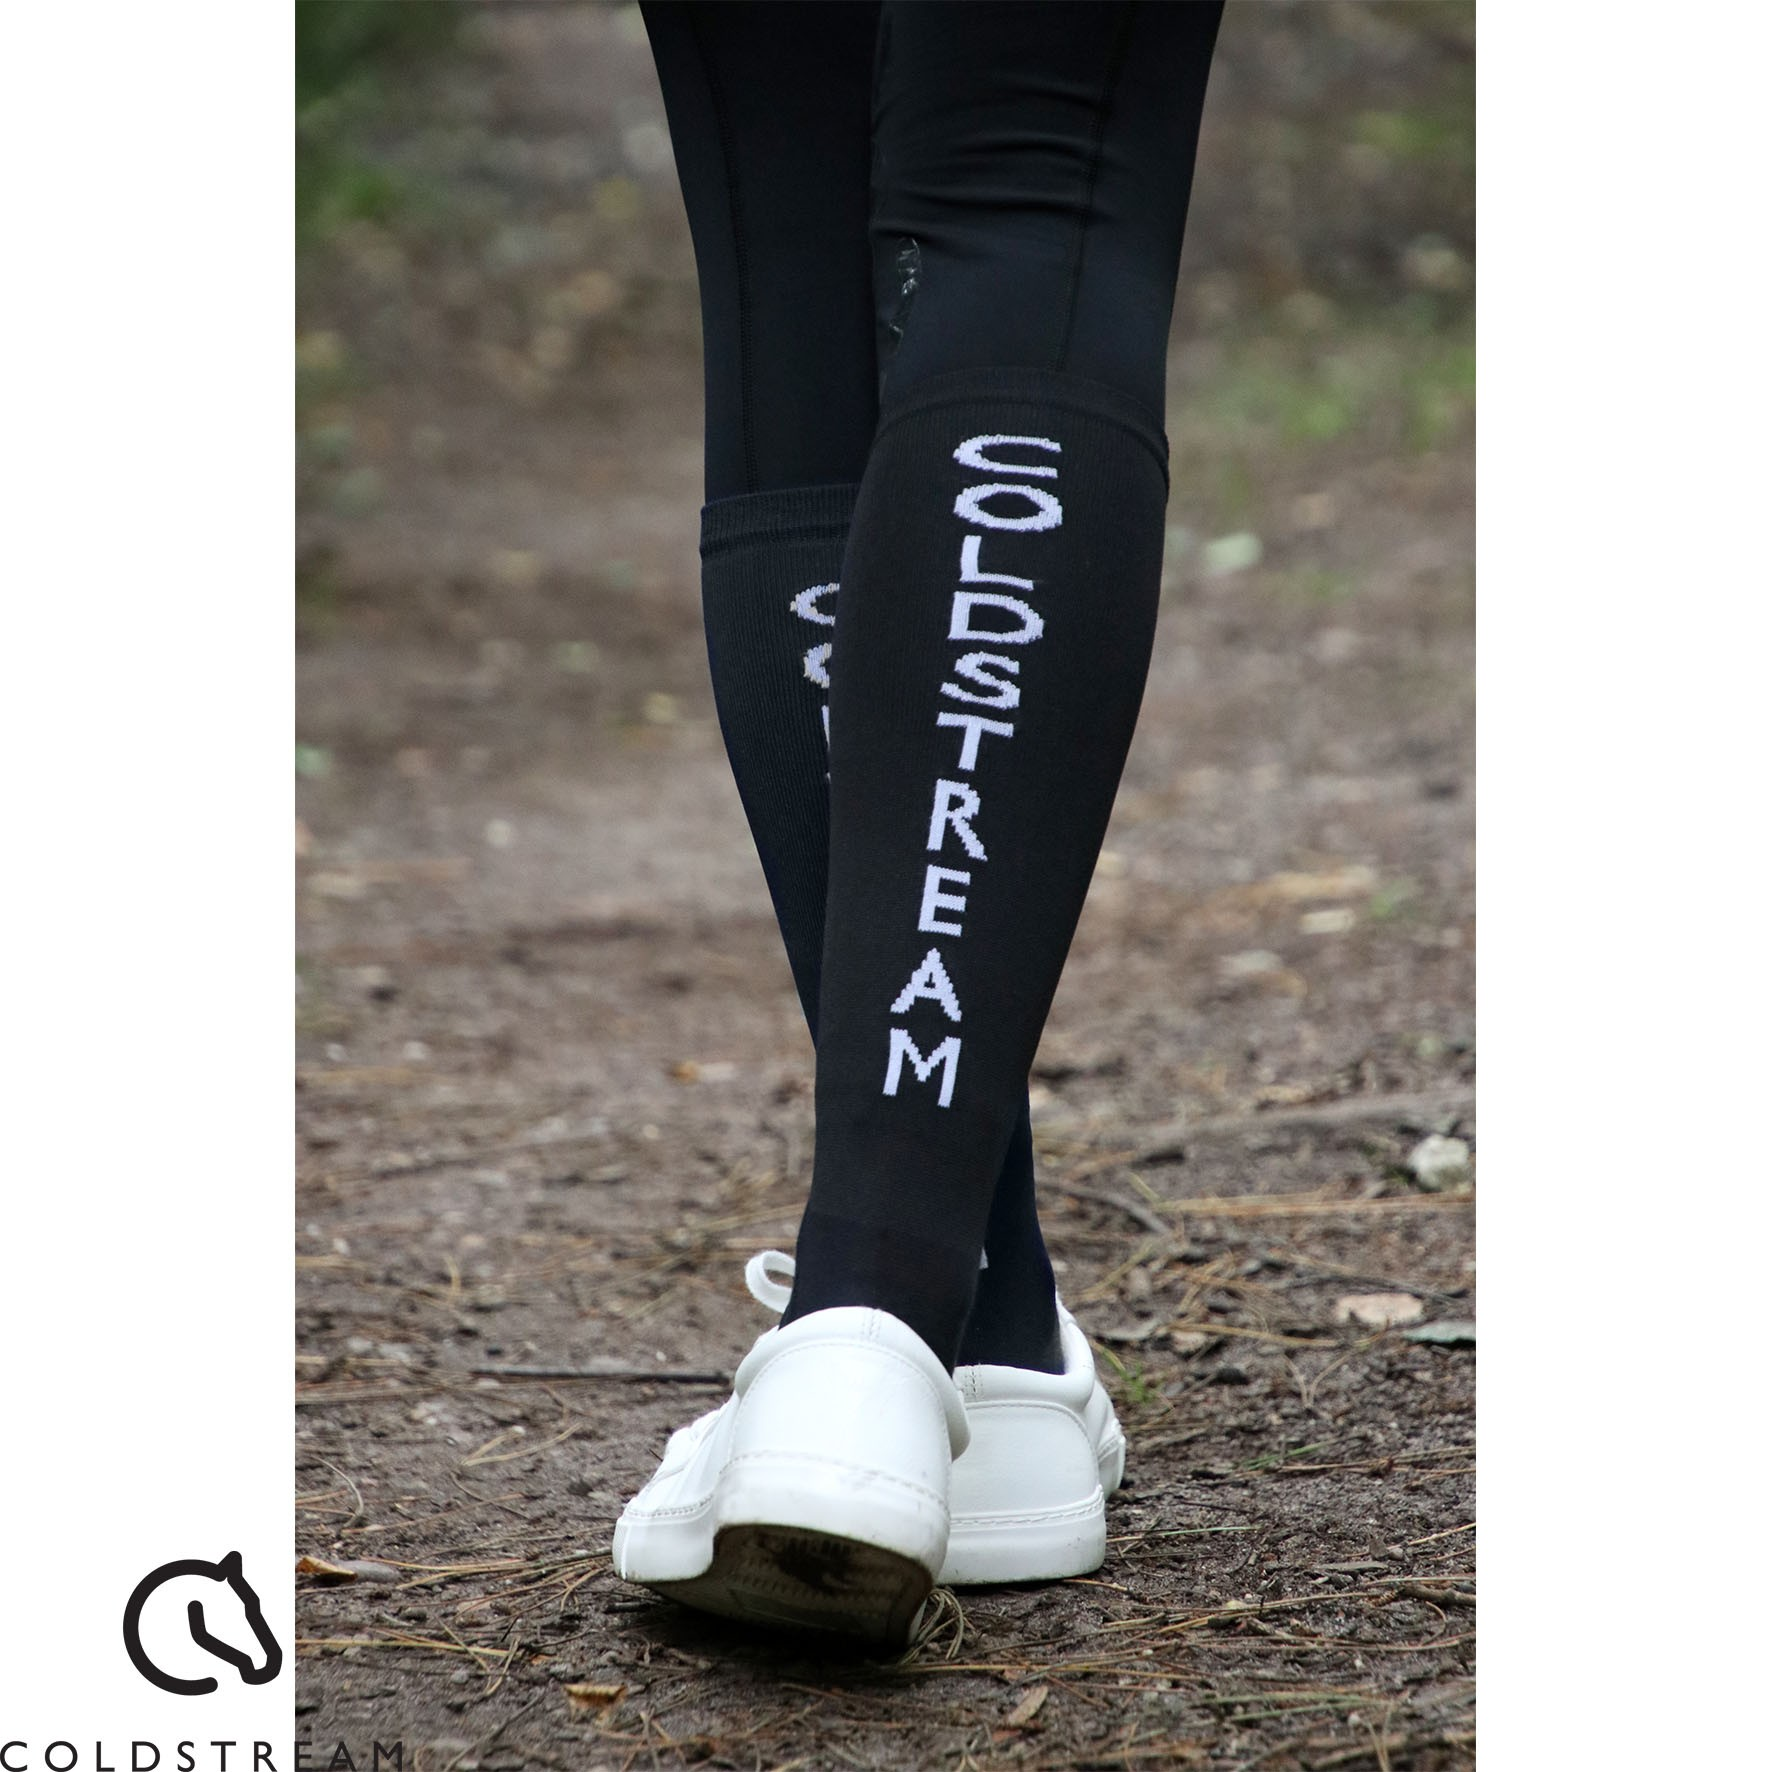 Coldstream Pawston Performance Socks (Single Pack)